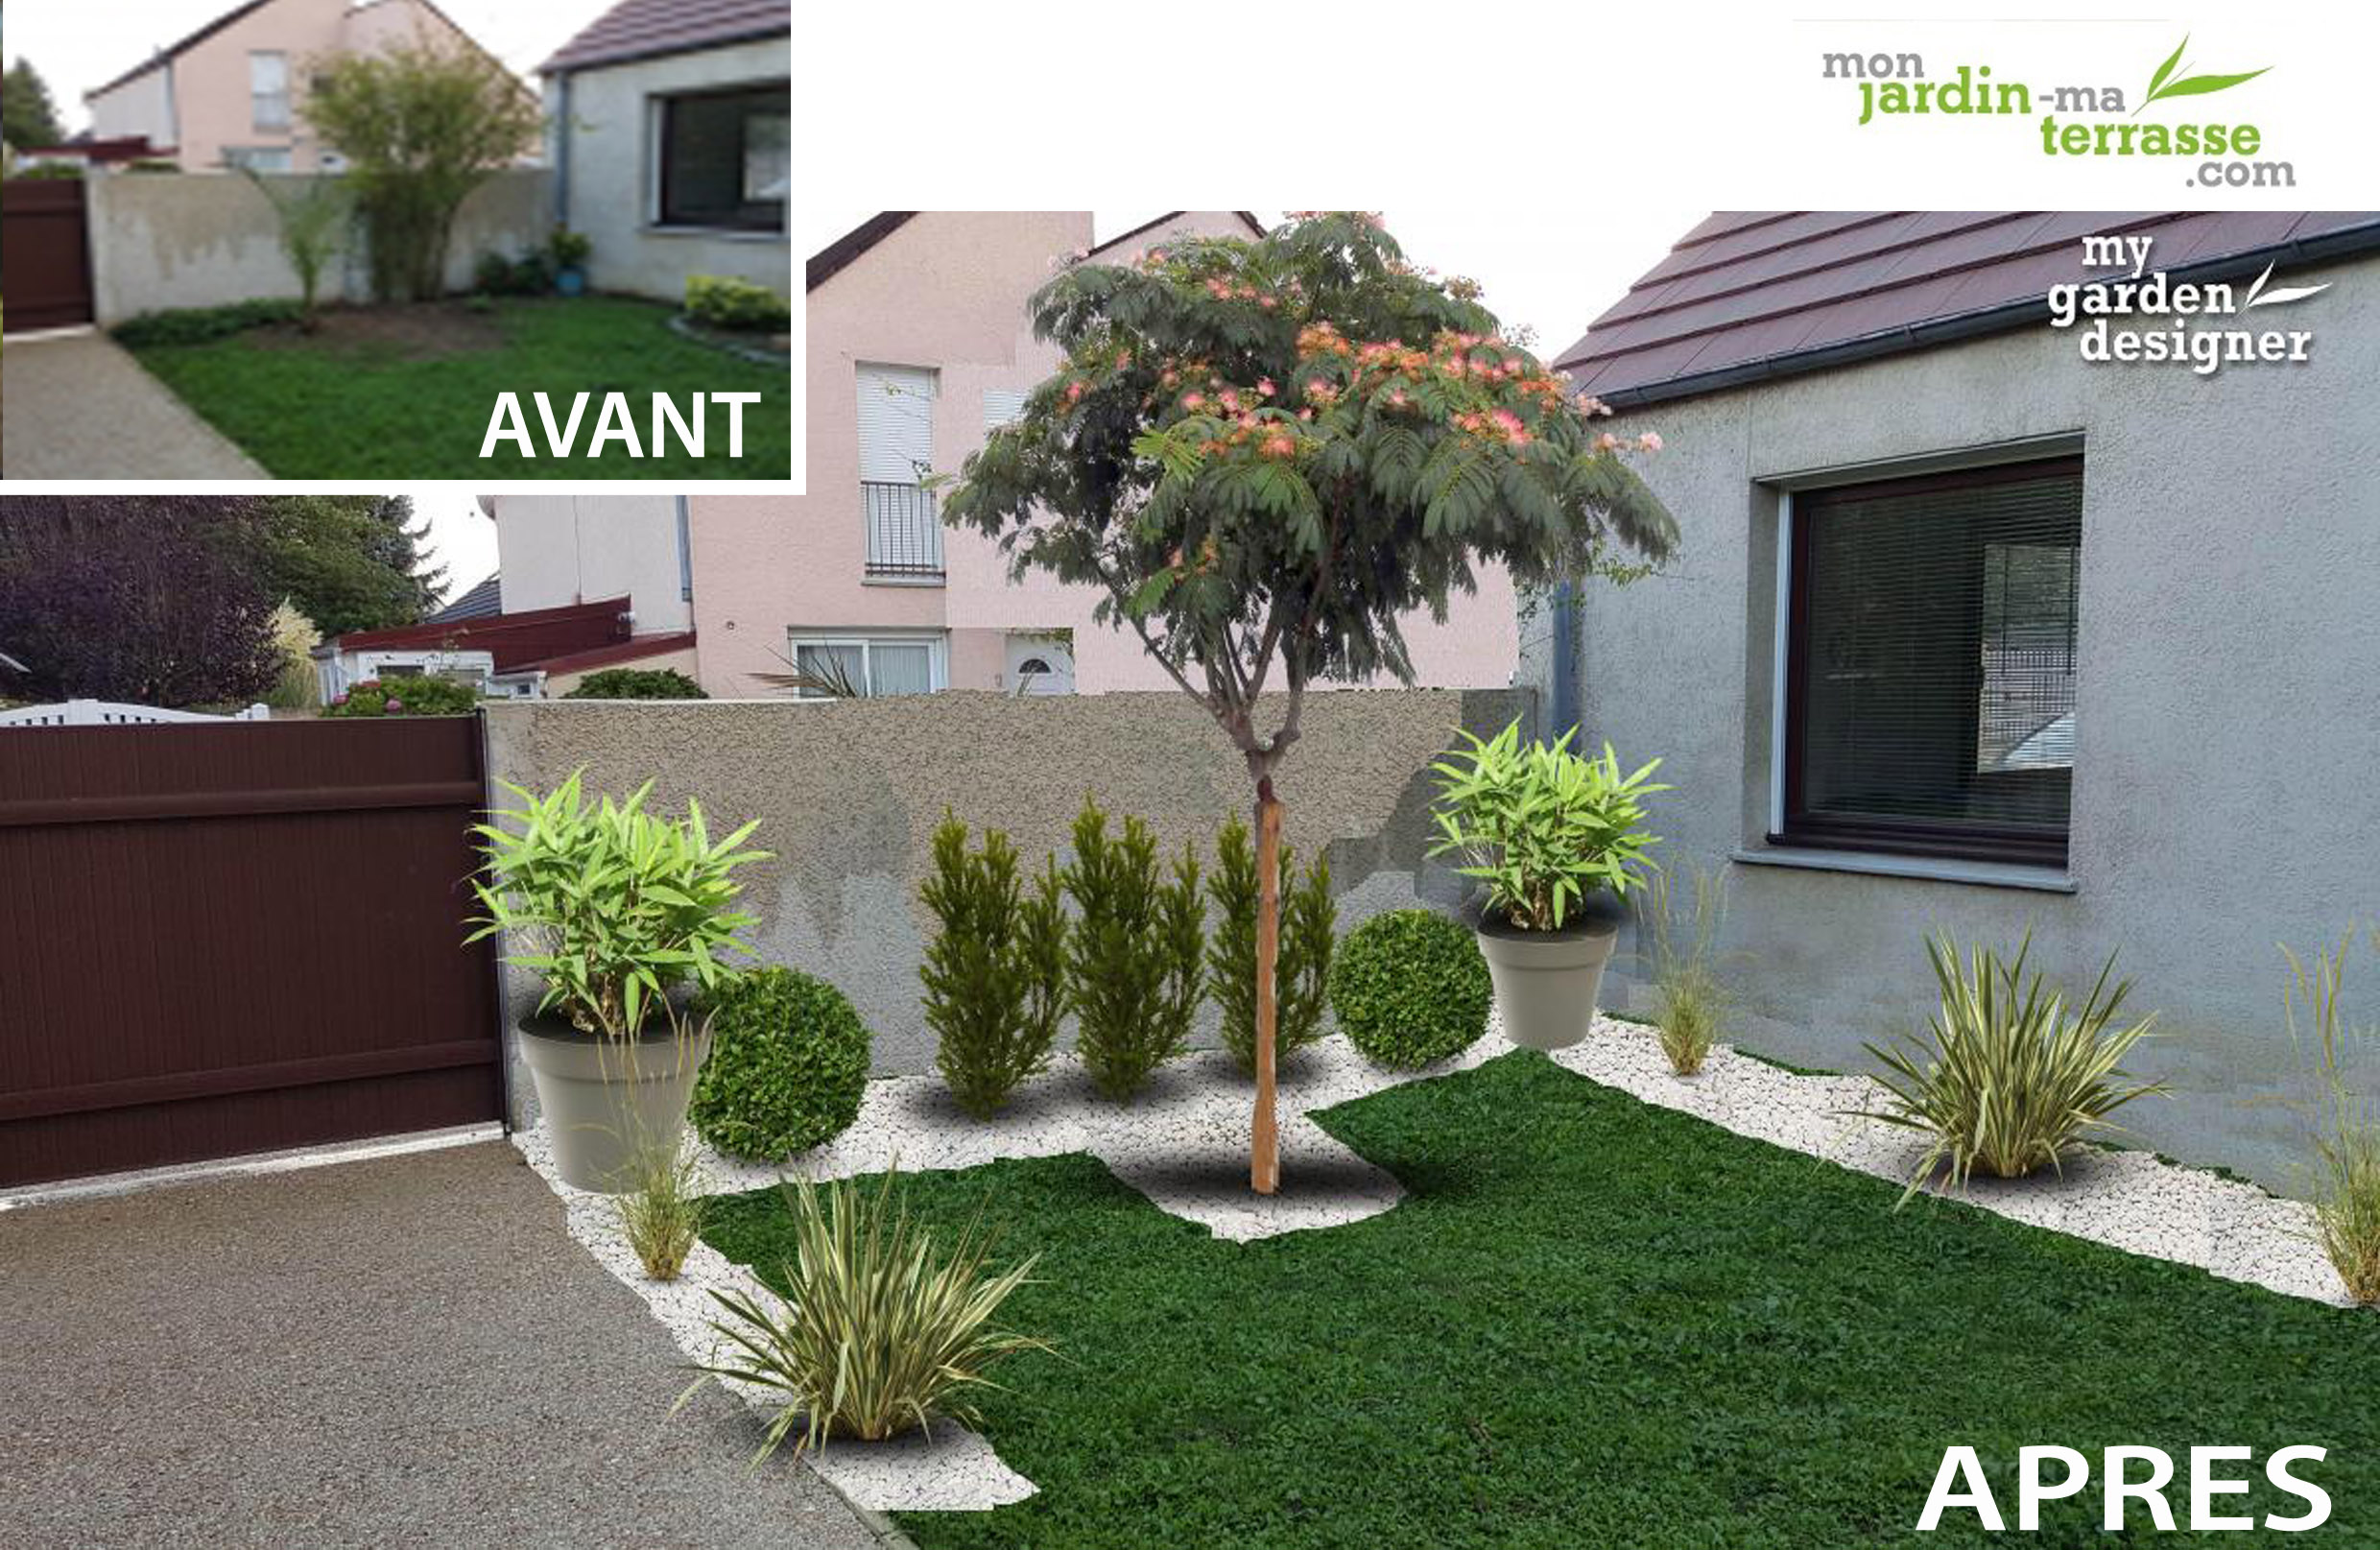 Am nager un petit jardin de 30m monjardin for Amenagement exterieur petit terrain